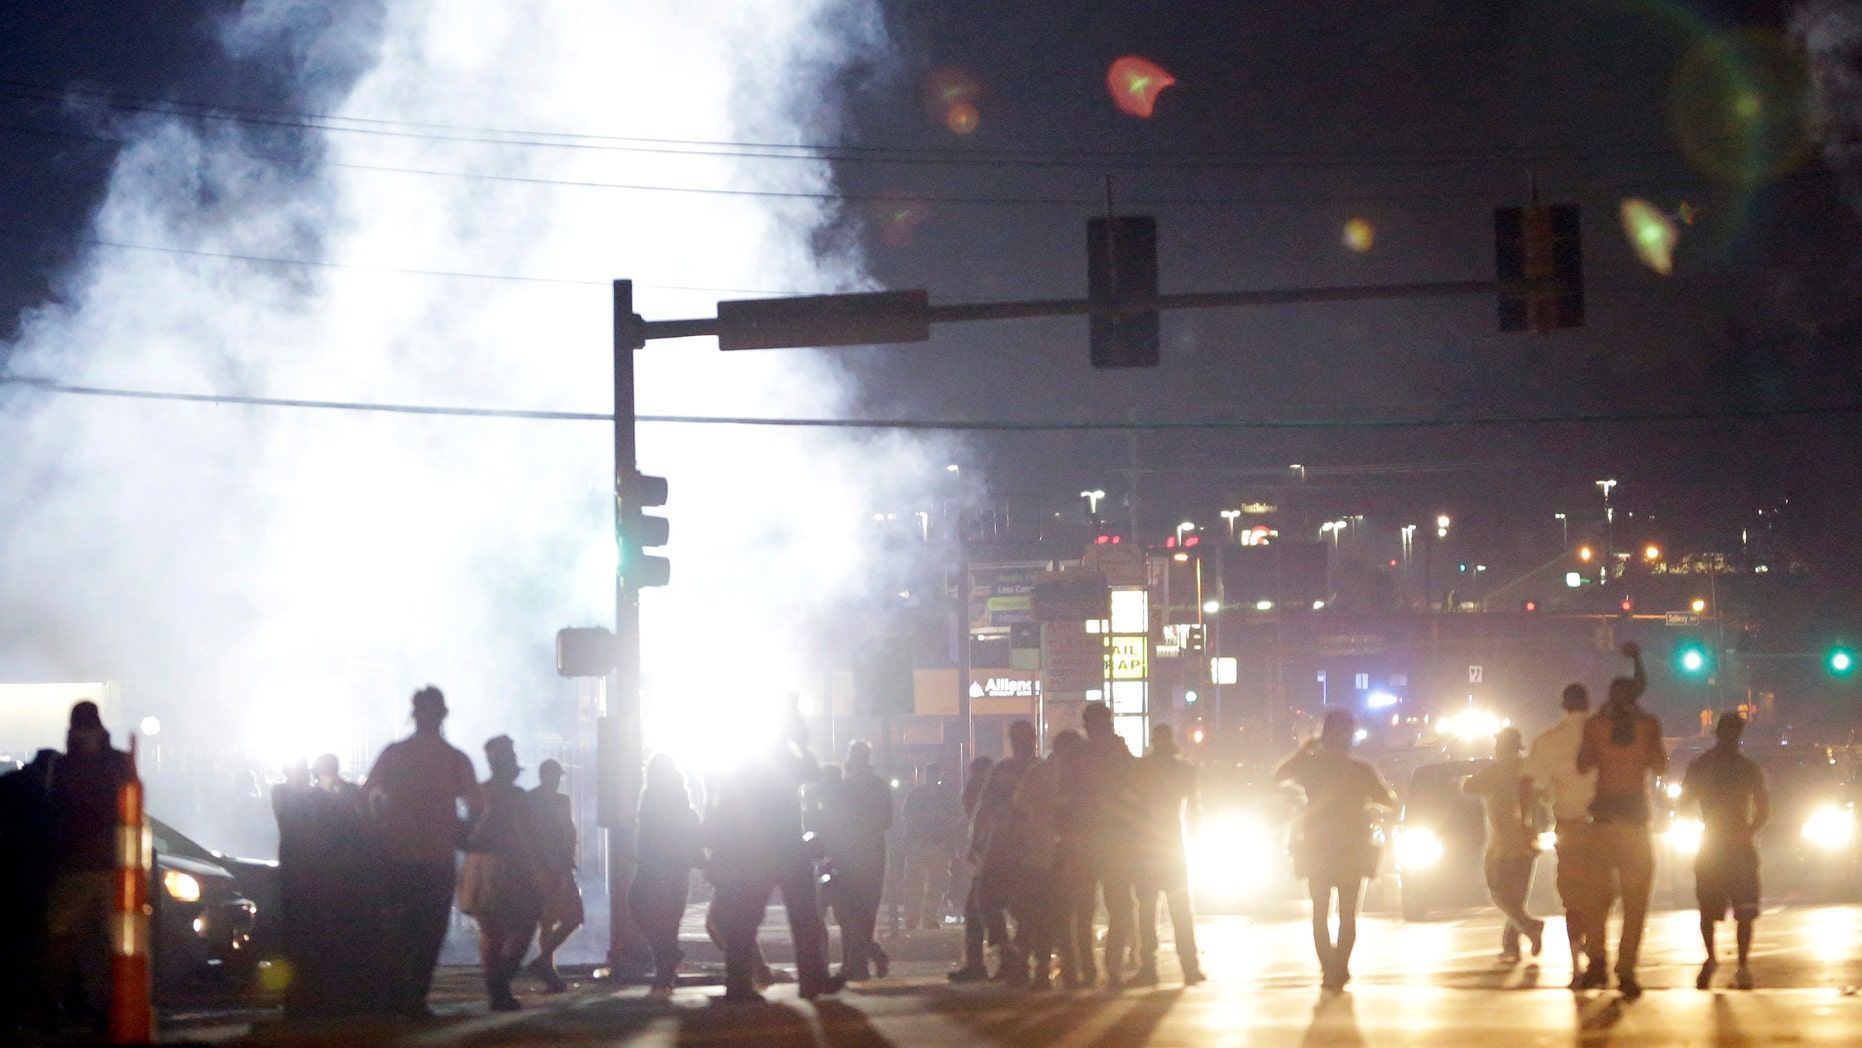 Aug. 18, 2014: People stand near a cloud of tear gas in Ferguson, Mo. during protests for the Aug. 9 shooting of unarmed black 18-year-old Michael Brown by a white police officer